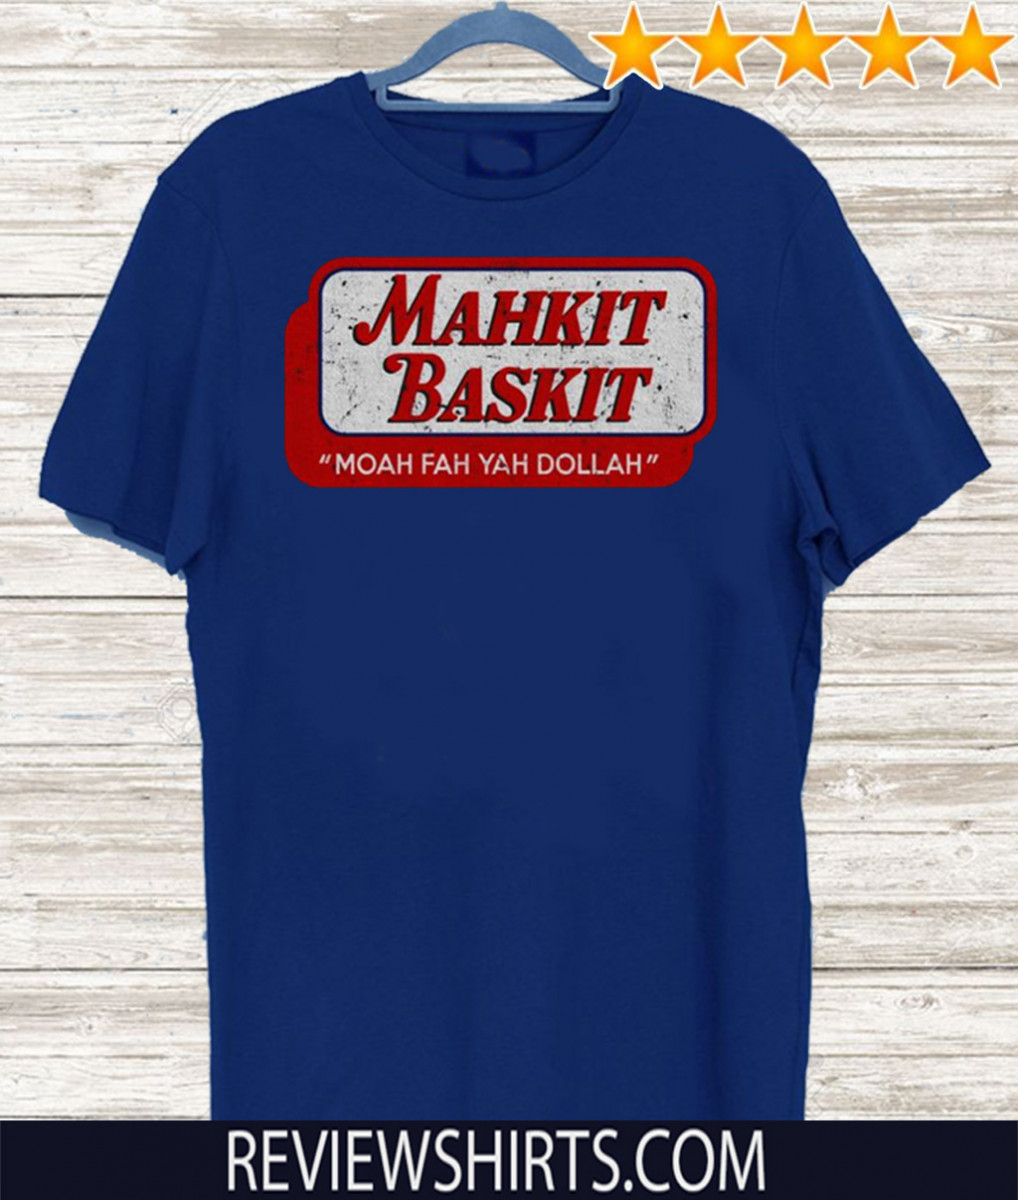 Mahkit Baskit Moah fah yah dollah Shirt - Limited Edition